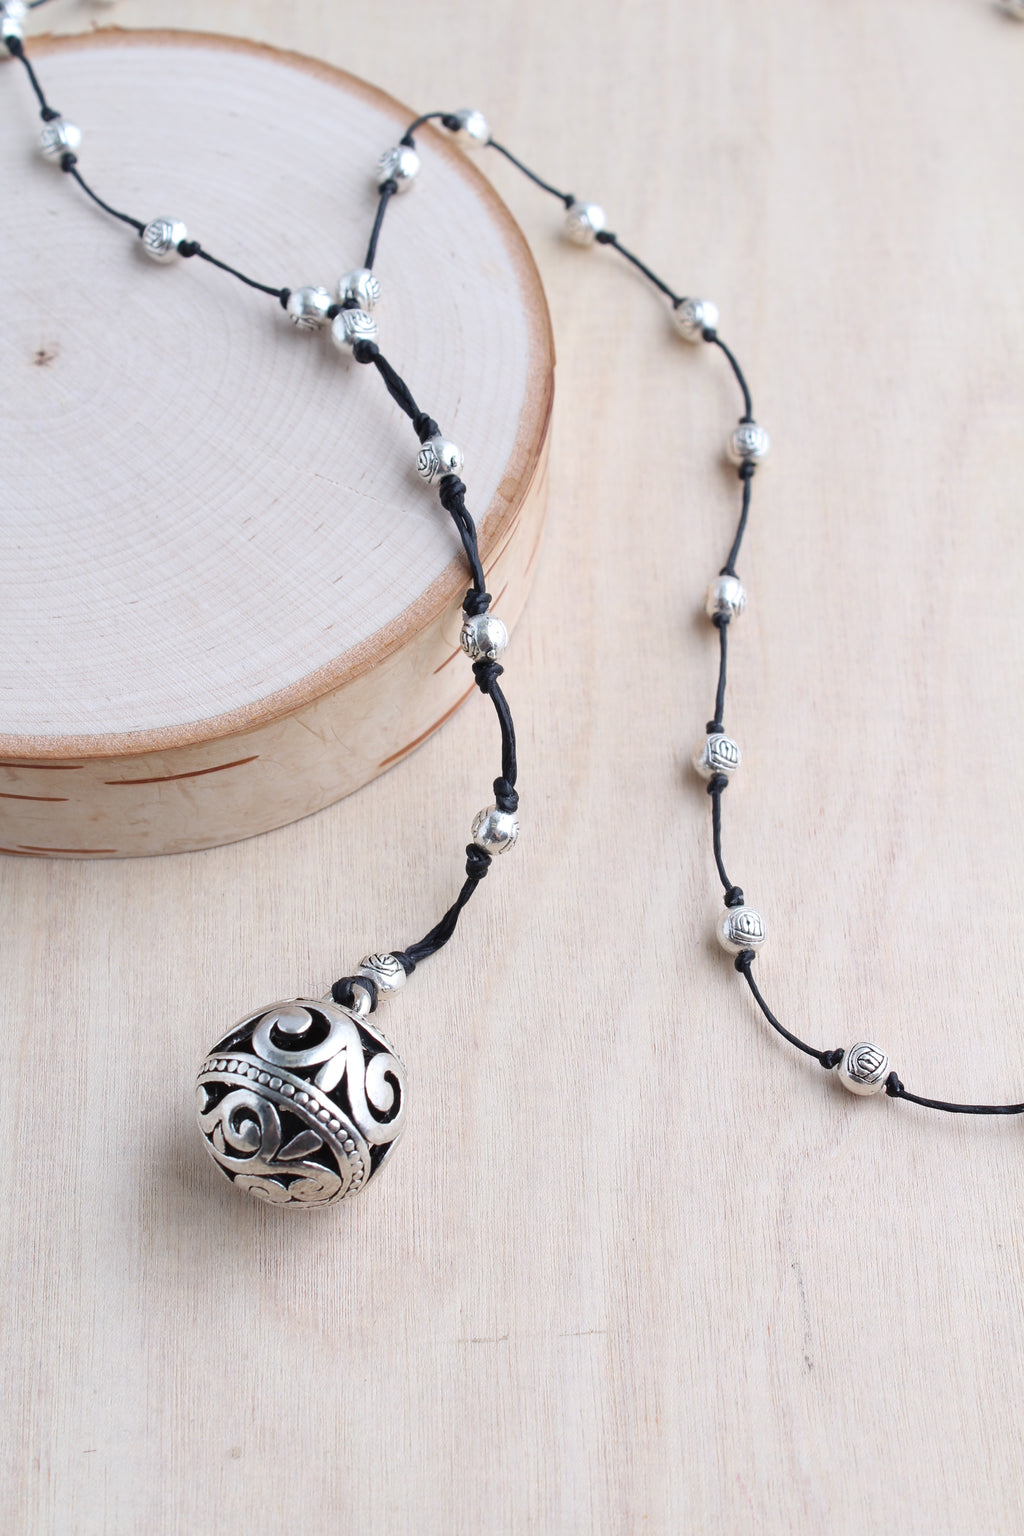 filigree ball,  alloy, bali queen, coco rose, silver, rhodium, hypoallergenic, tribal jewelry